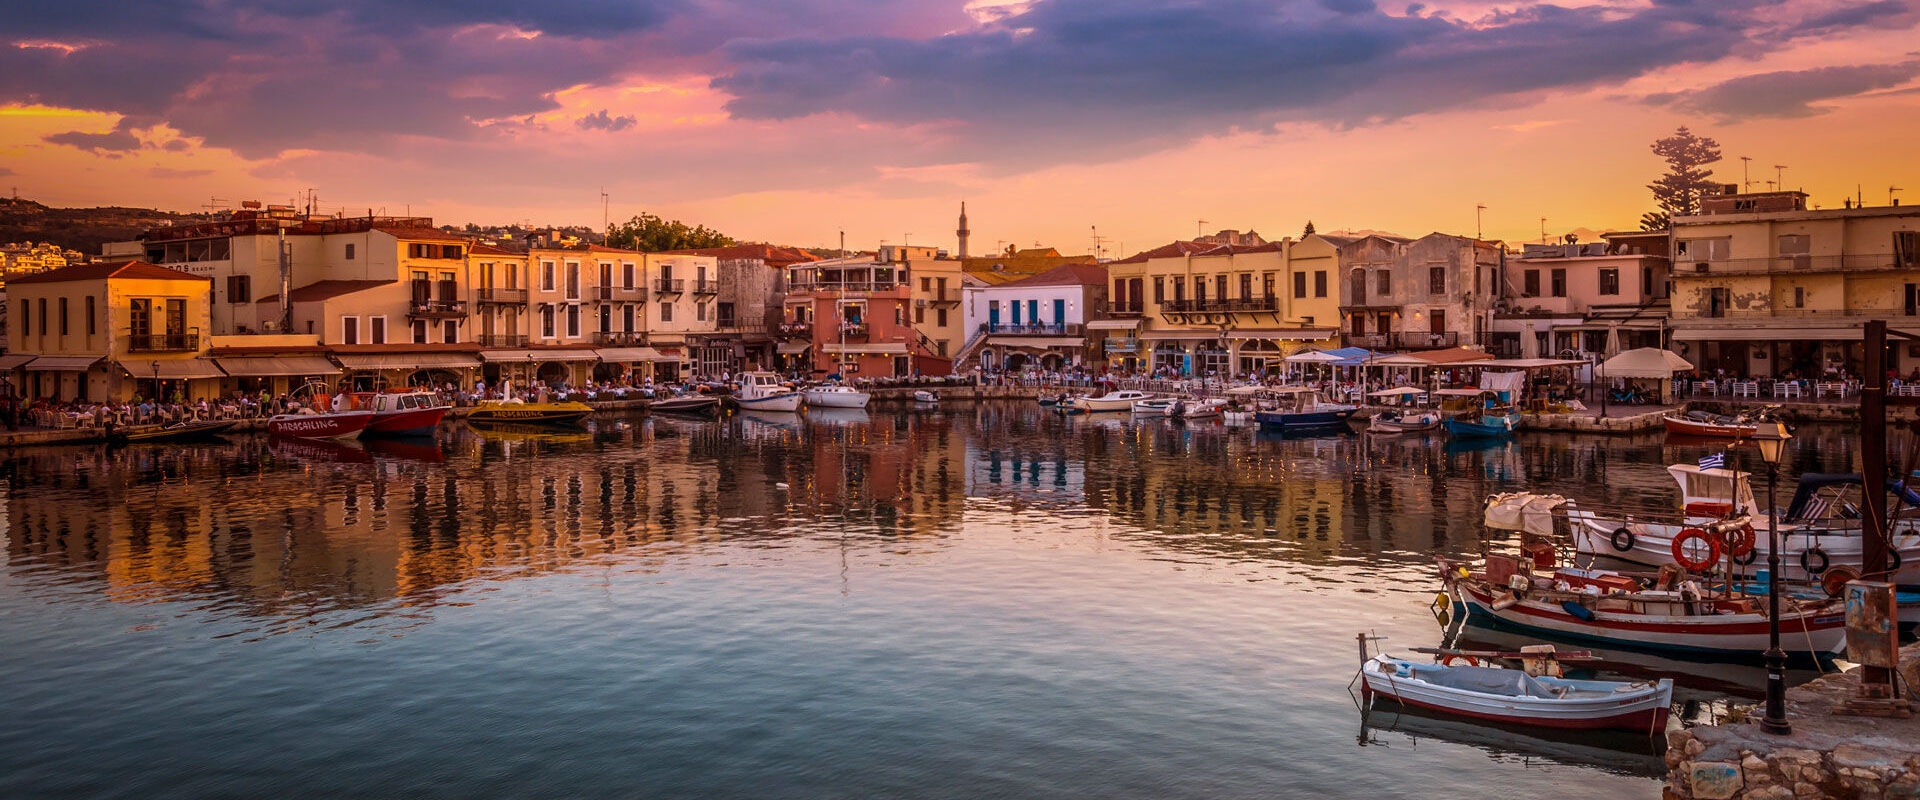 The Venetian Harbour of Rethymno, is the ideal place to enjoy fresh fish in a seaside taverna